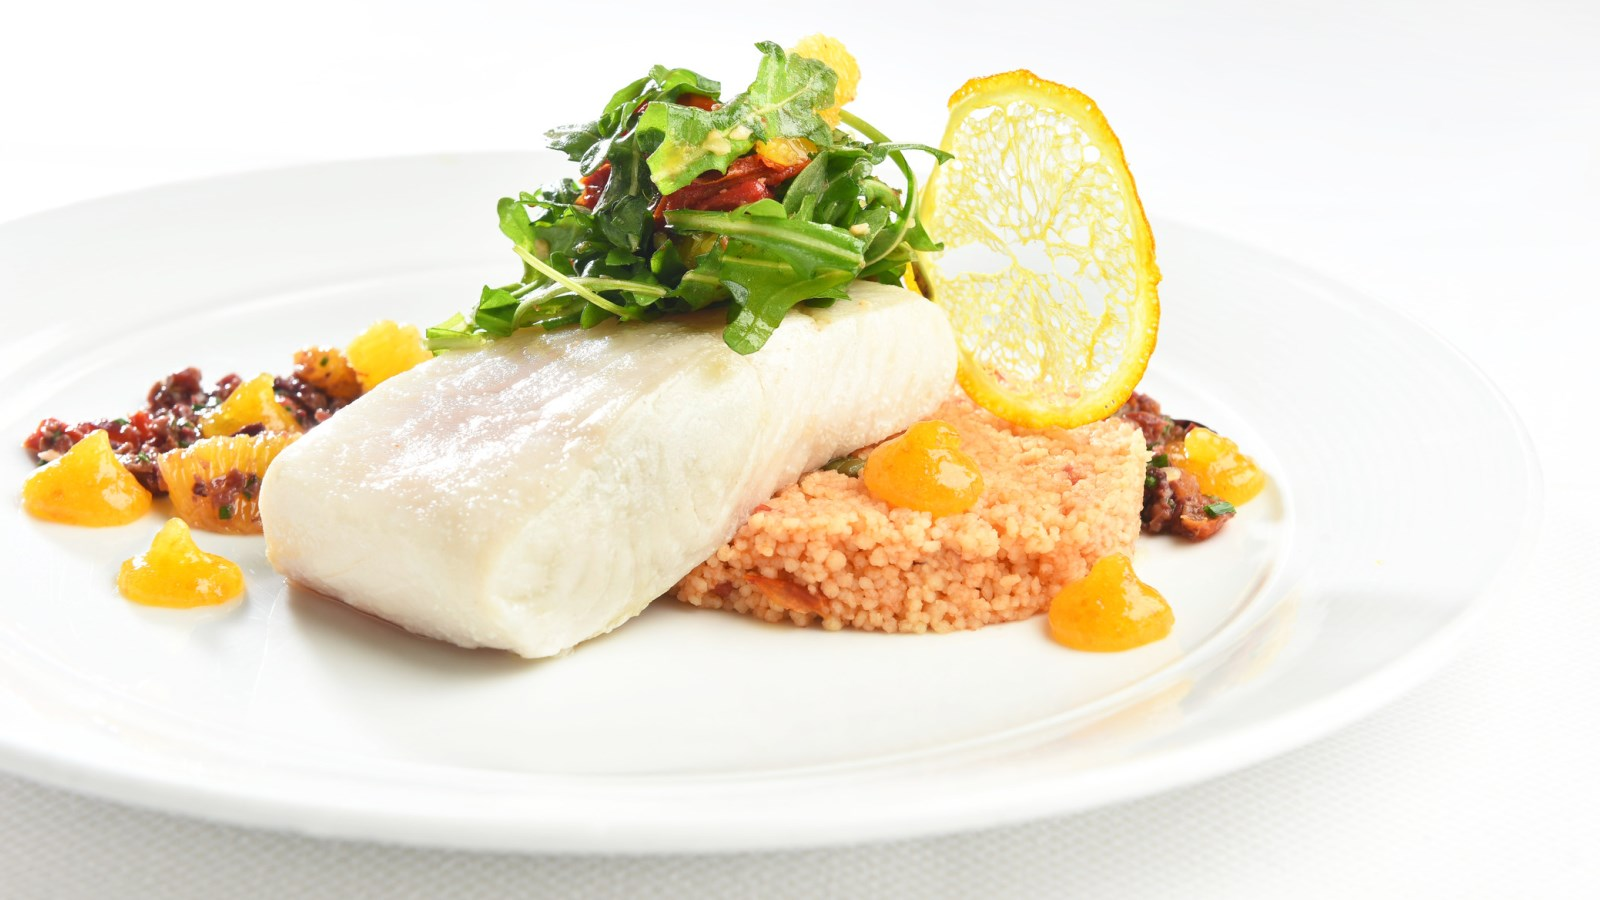 Expertly cooked Halibut - an example of the sophisticated fare you can expect at the Westin Houston, Memorial City.